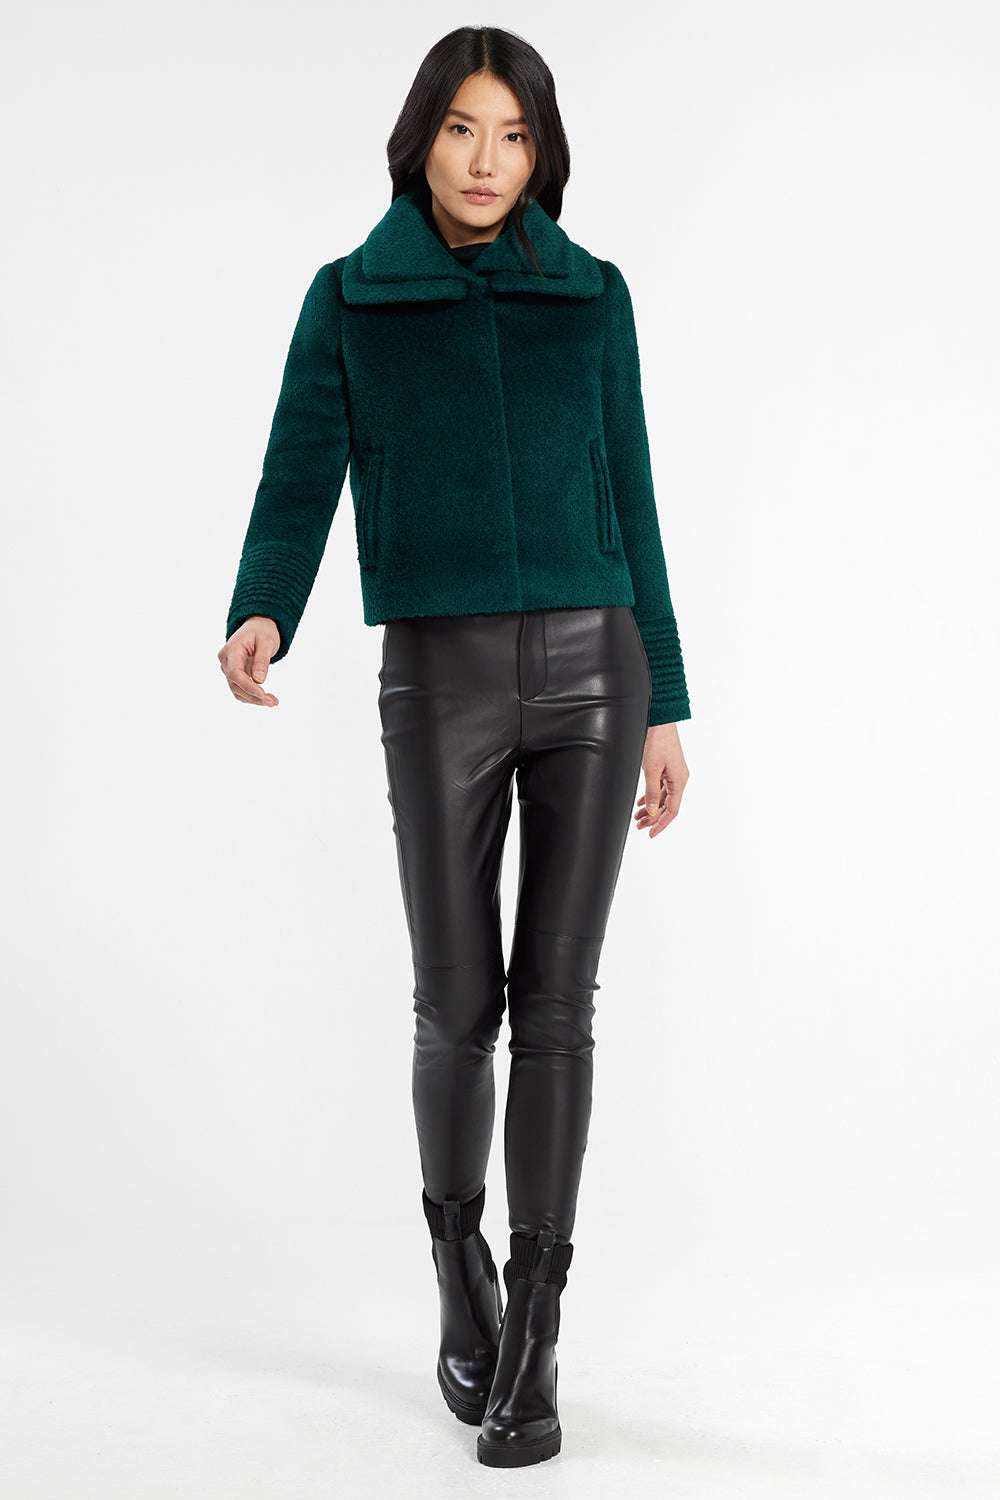 Sentaler Bouclé Alpaca Moto Jacket with Signature Double Collar featured in Bouclé Alpaca and available in Emerald Green. Seen from front.